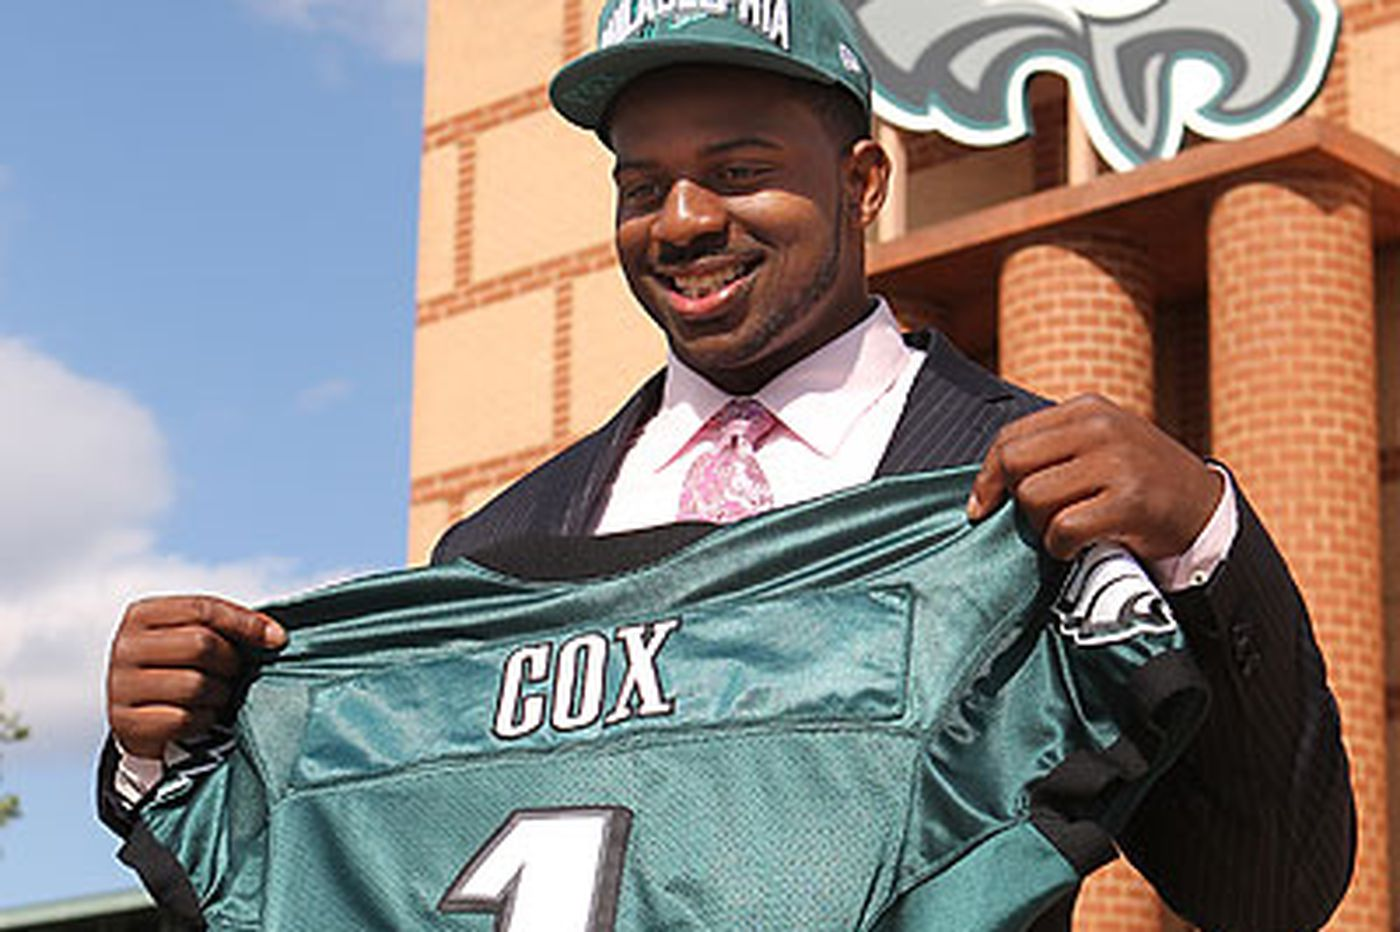 Paul Domowitch: Cox, Kendricks in Eagles' pass-cover plans